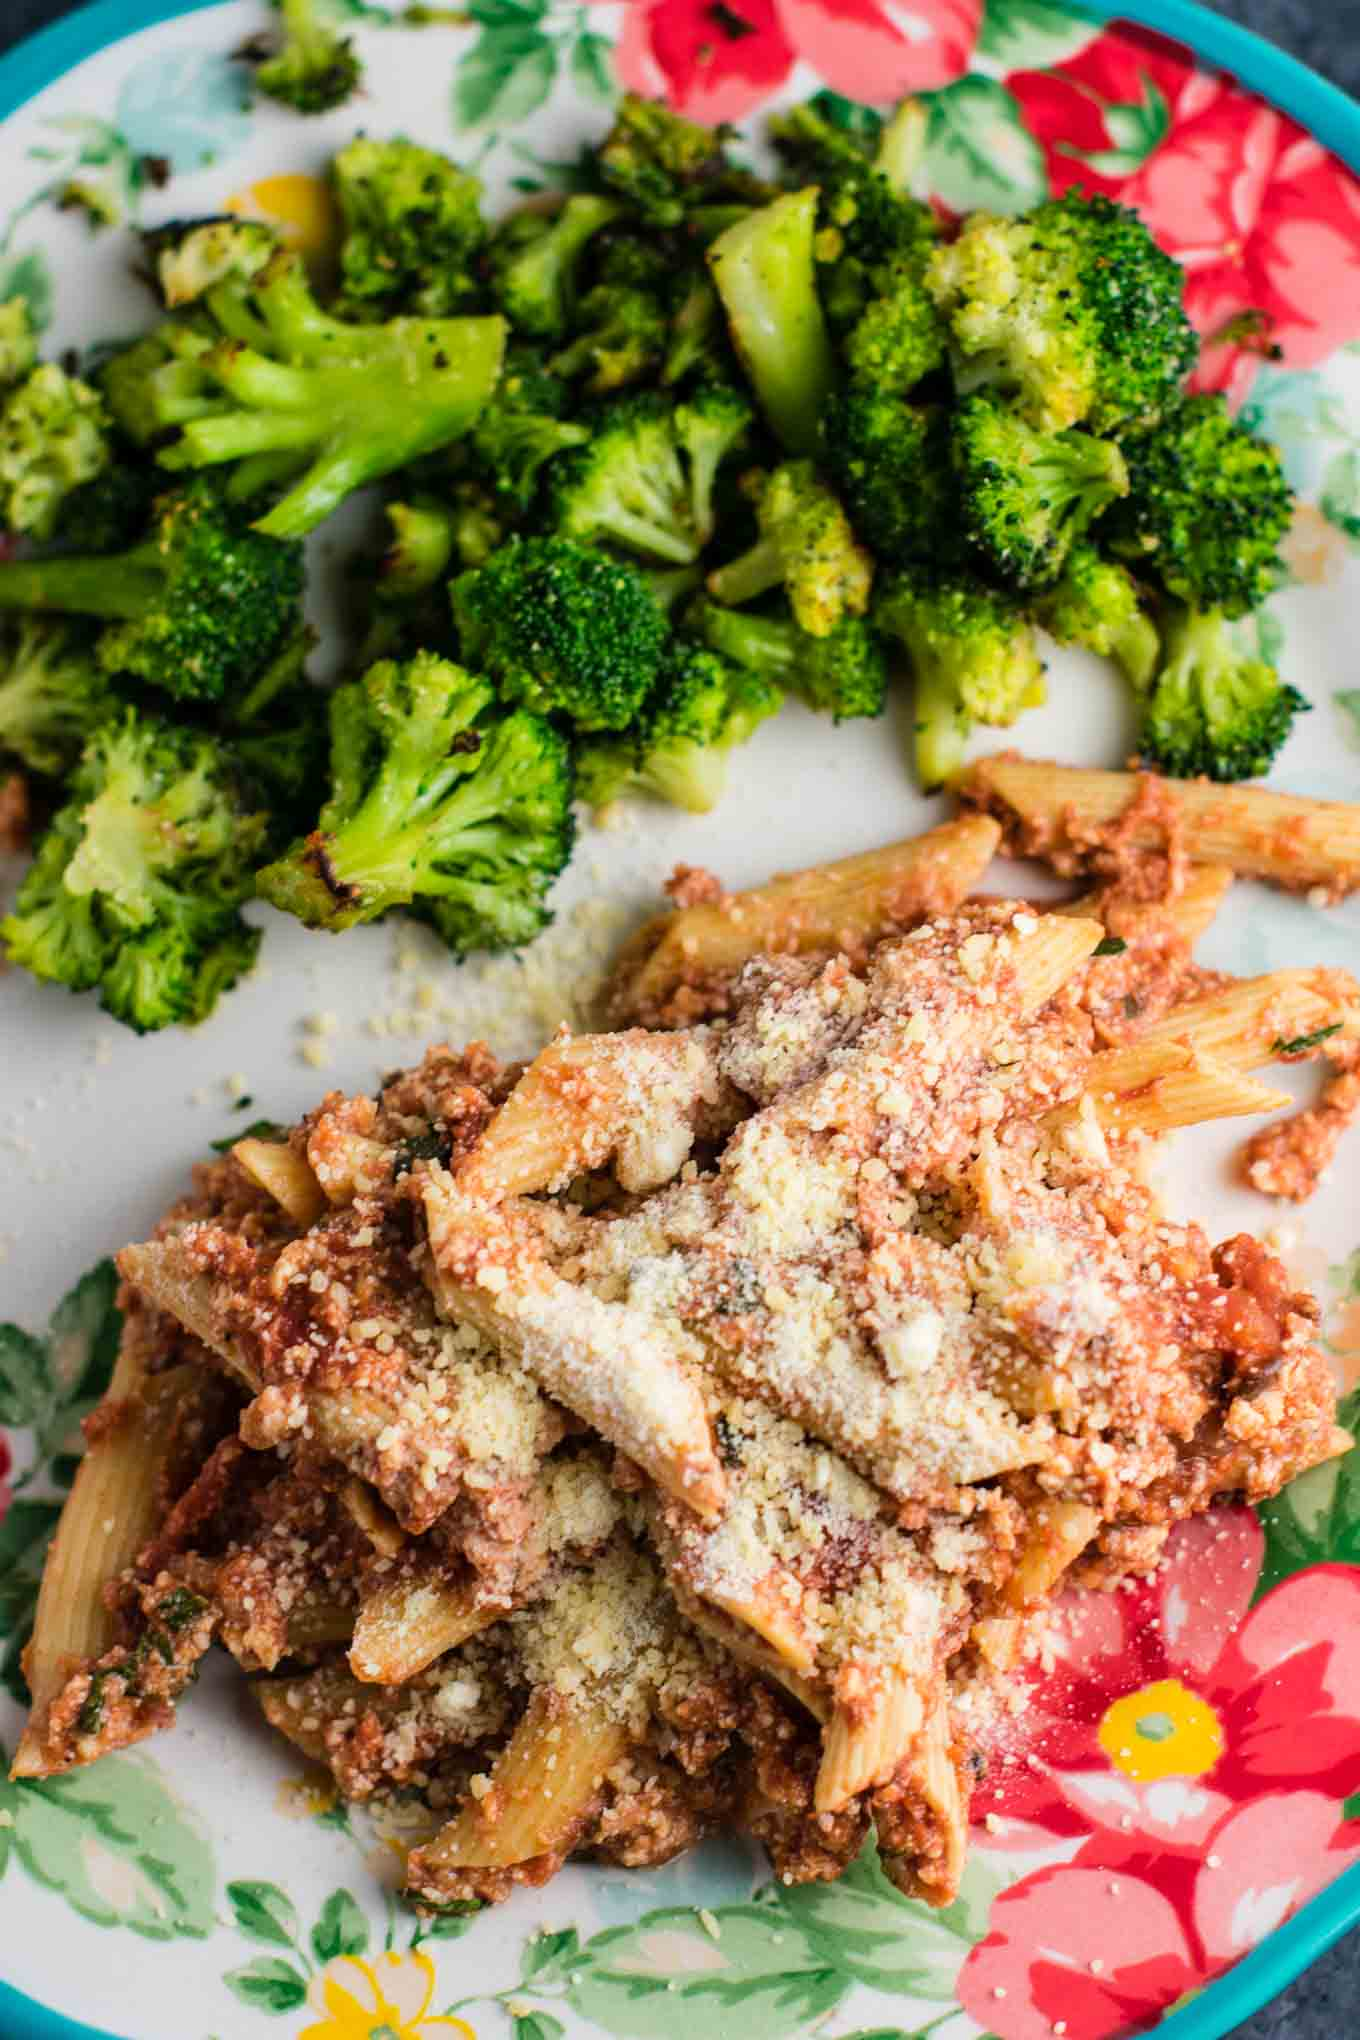 crock pot ziti and roasted broccoli on a plate